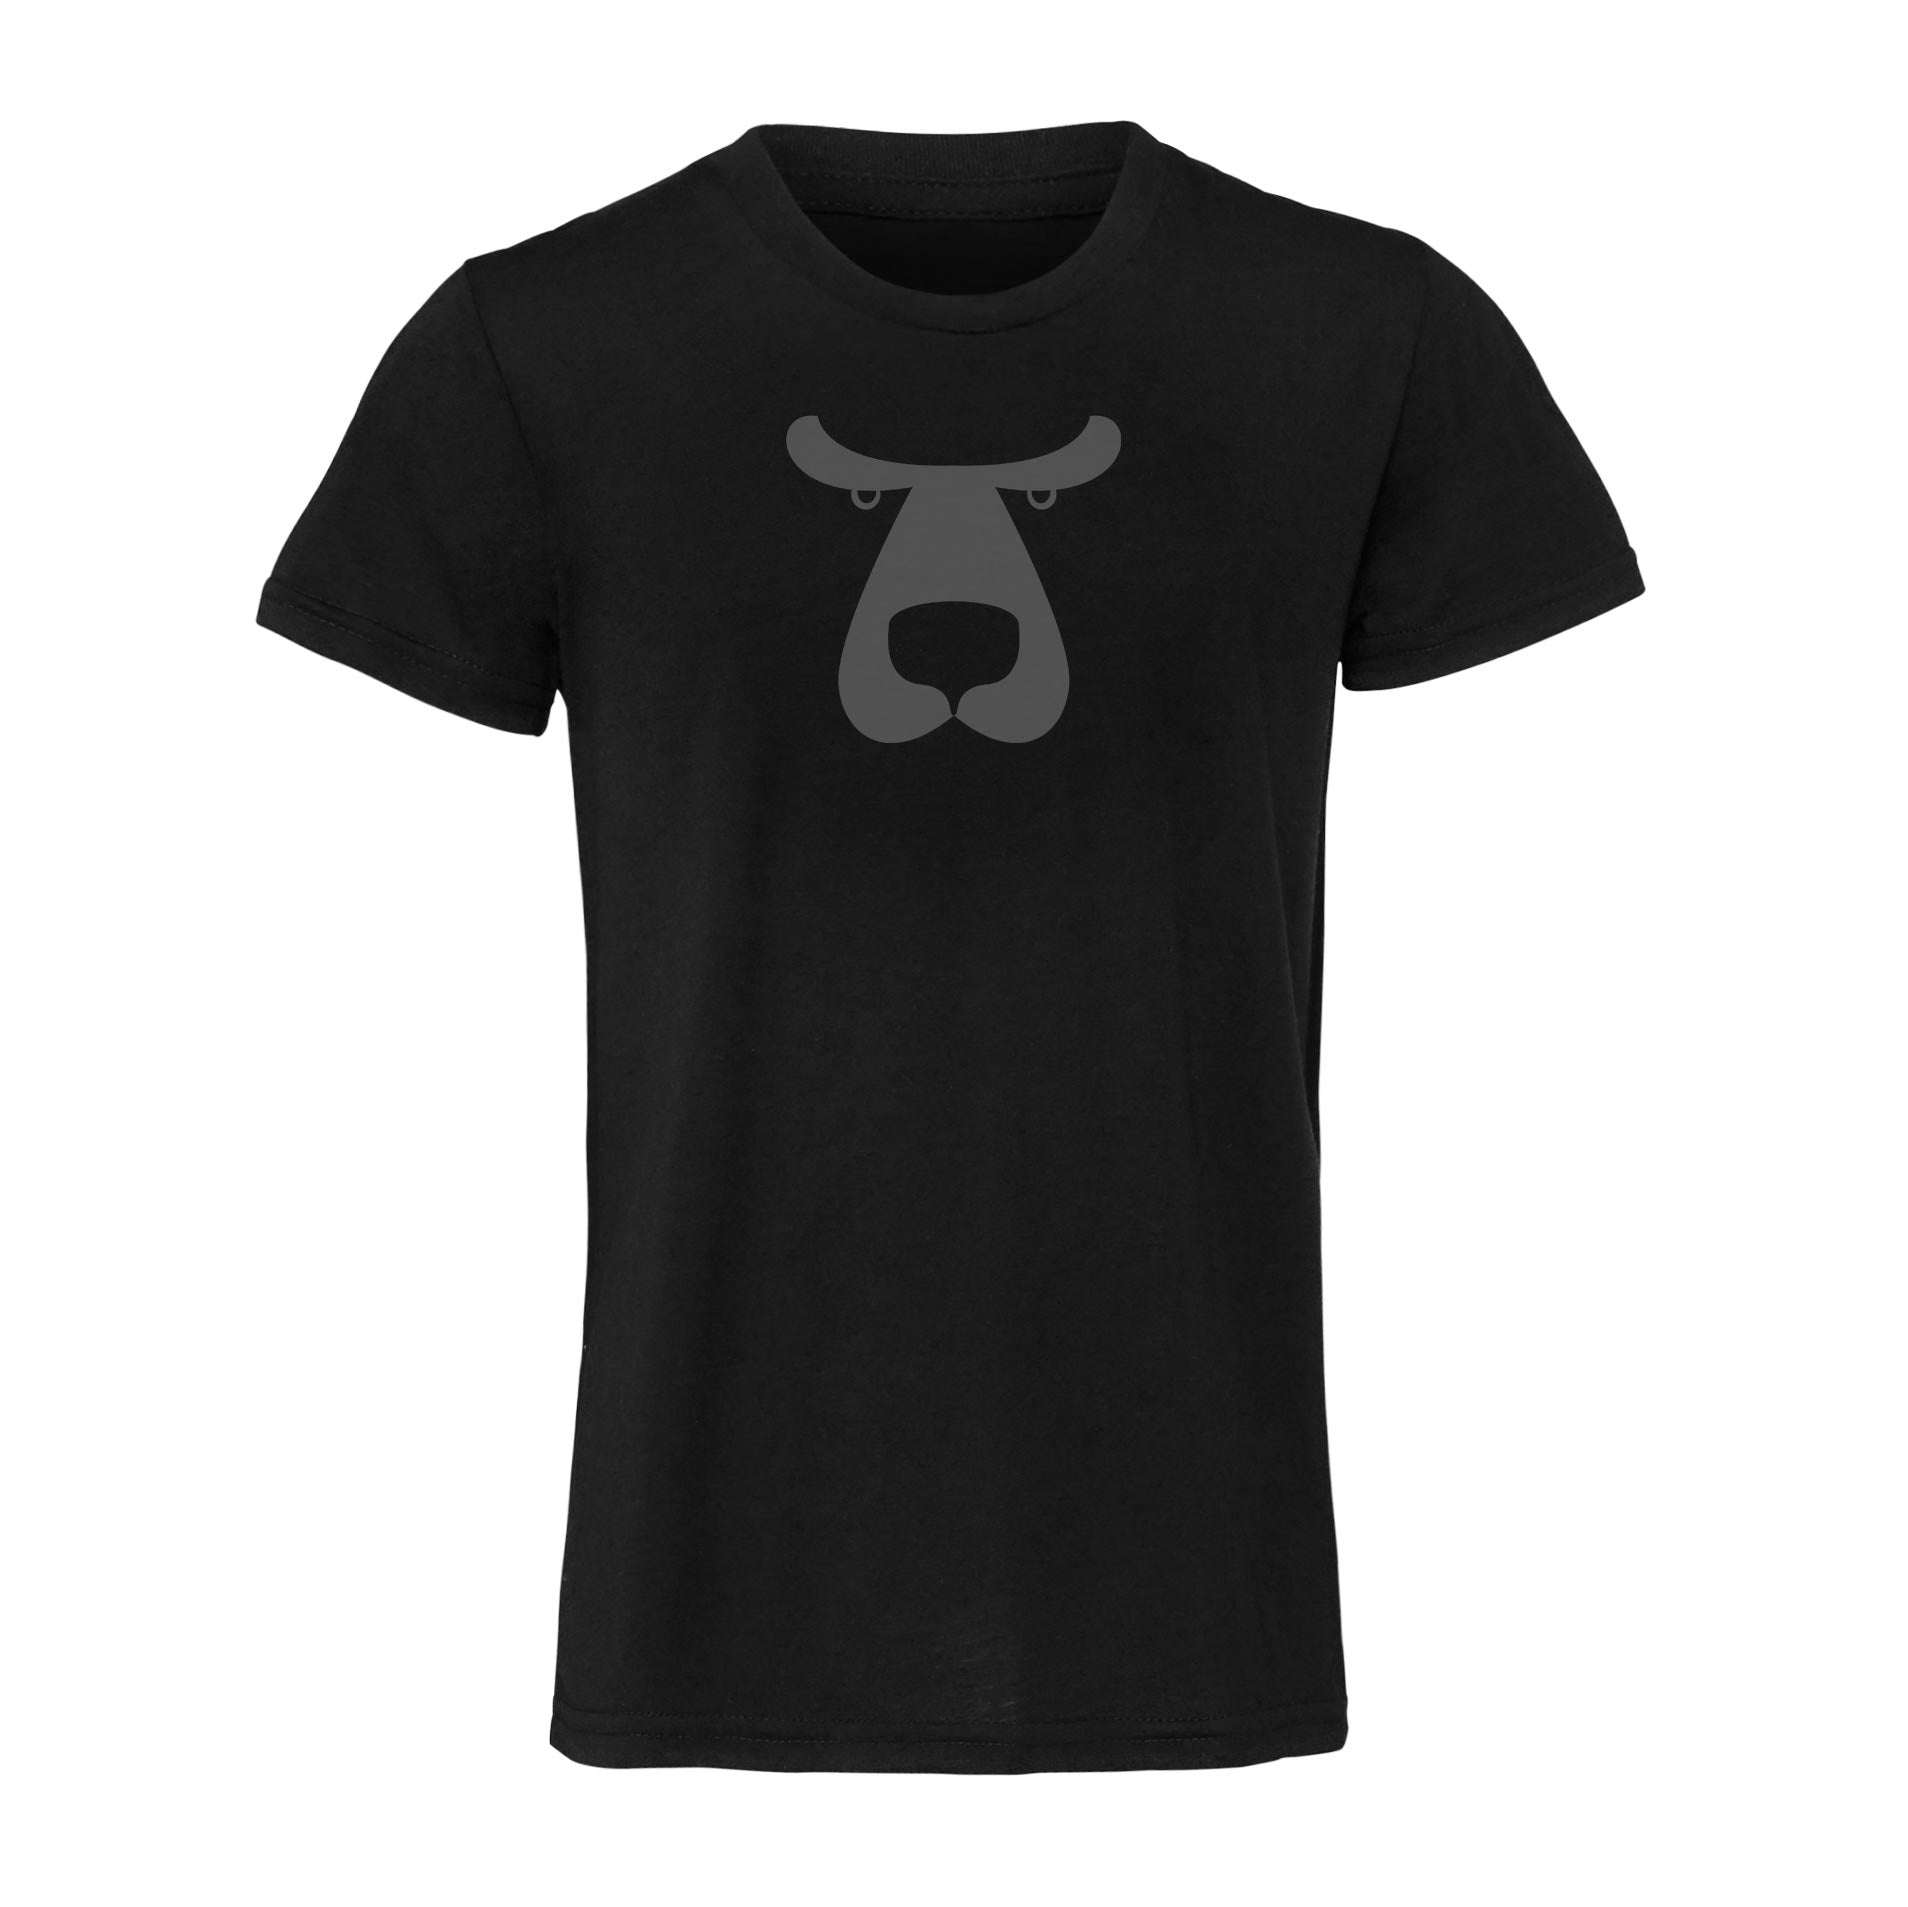 Backroom Bear Tee - Black/Gray